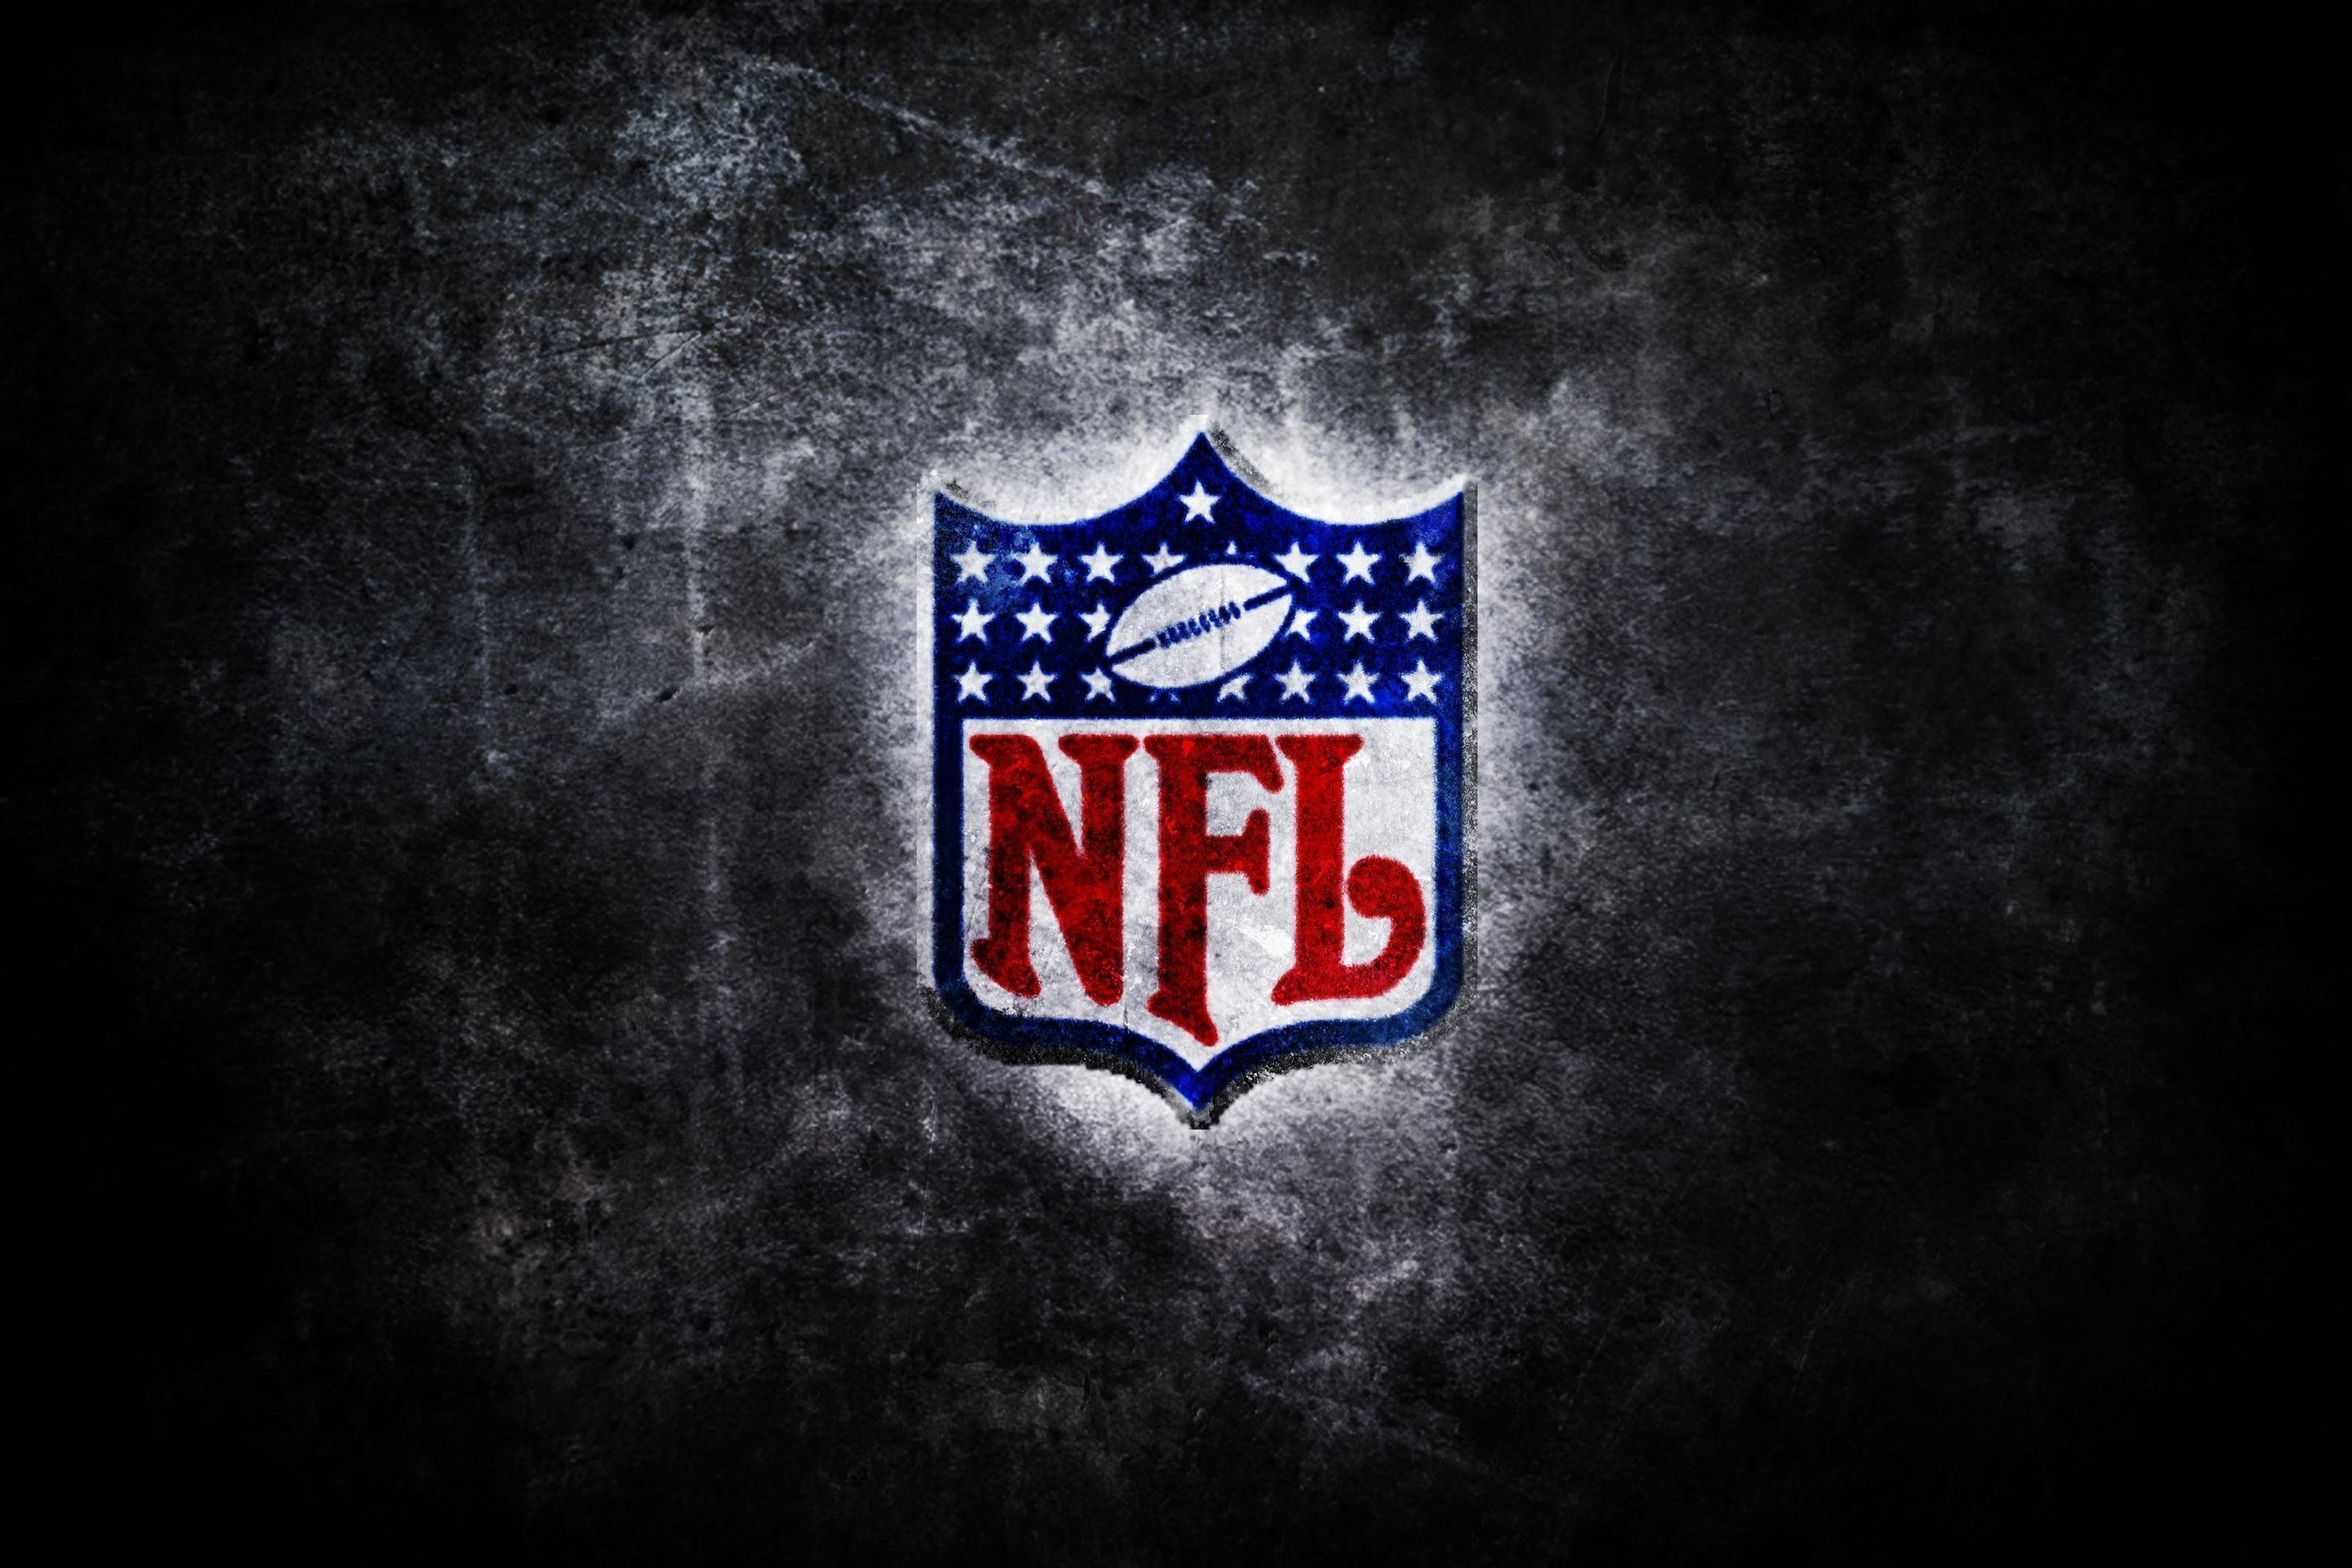 Cool American Football Wallpapers Nfl: Cool NFL Wallpapers (74+ Images